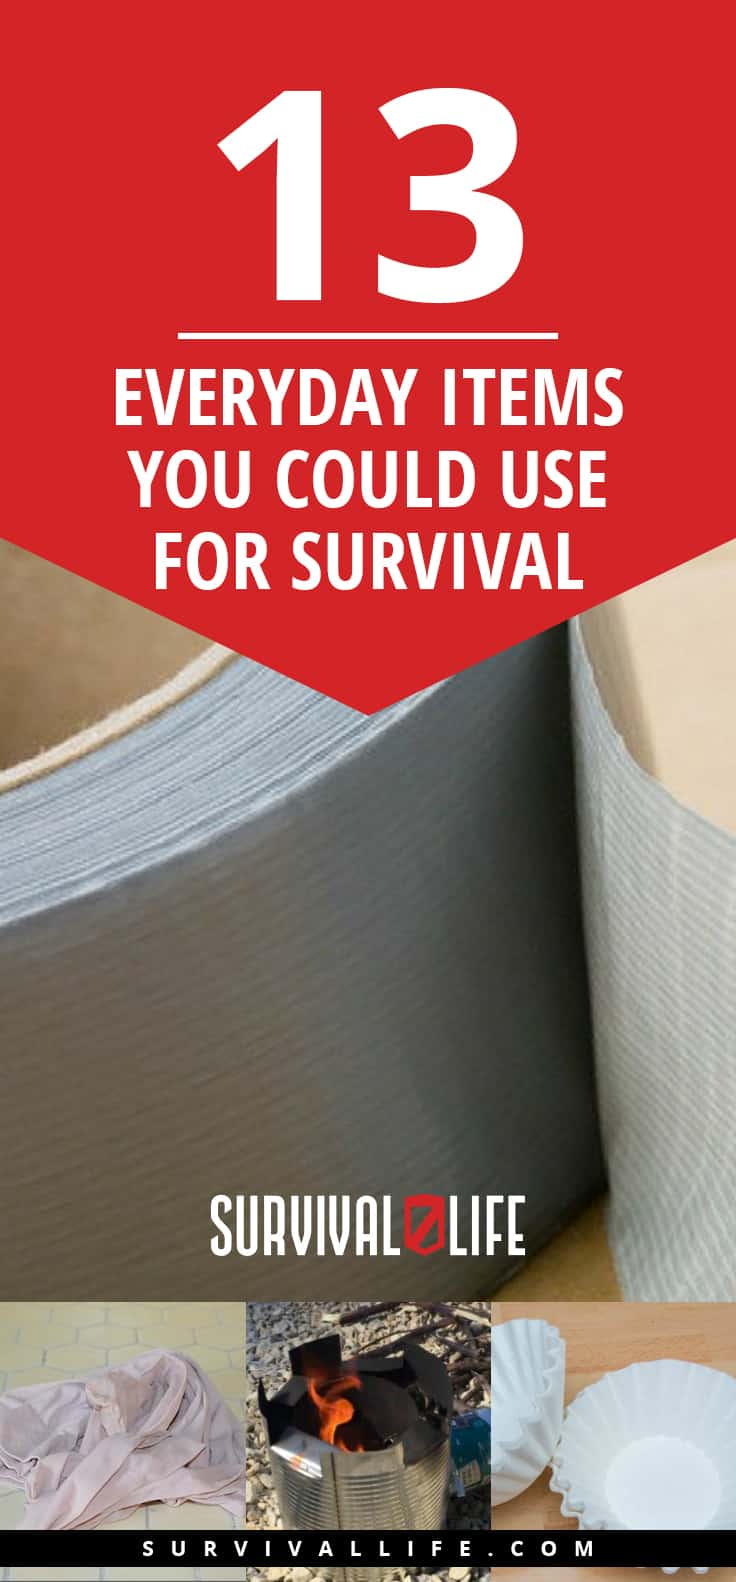 13 Everyday Items You Could Use For Survival | https://survivallife.com/everyday-items-for-survival/